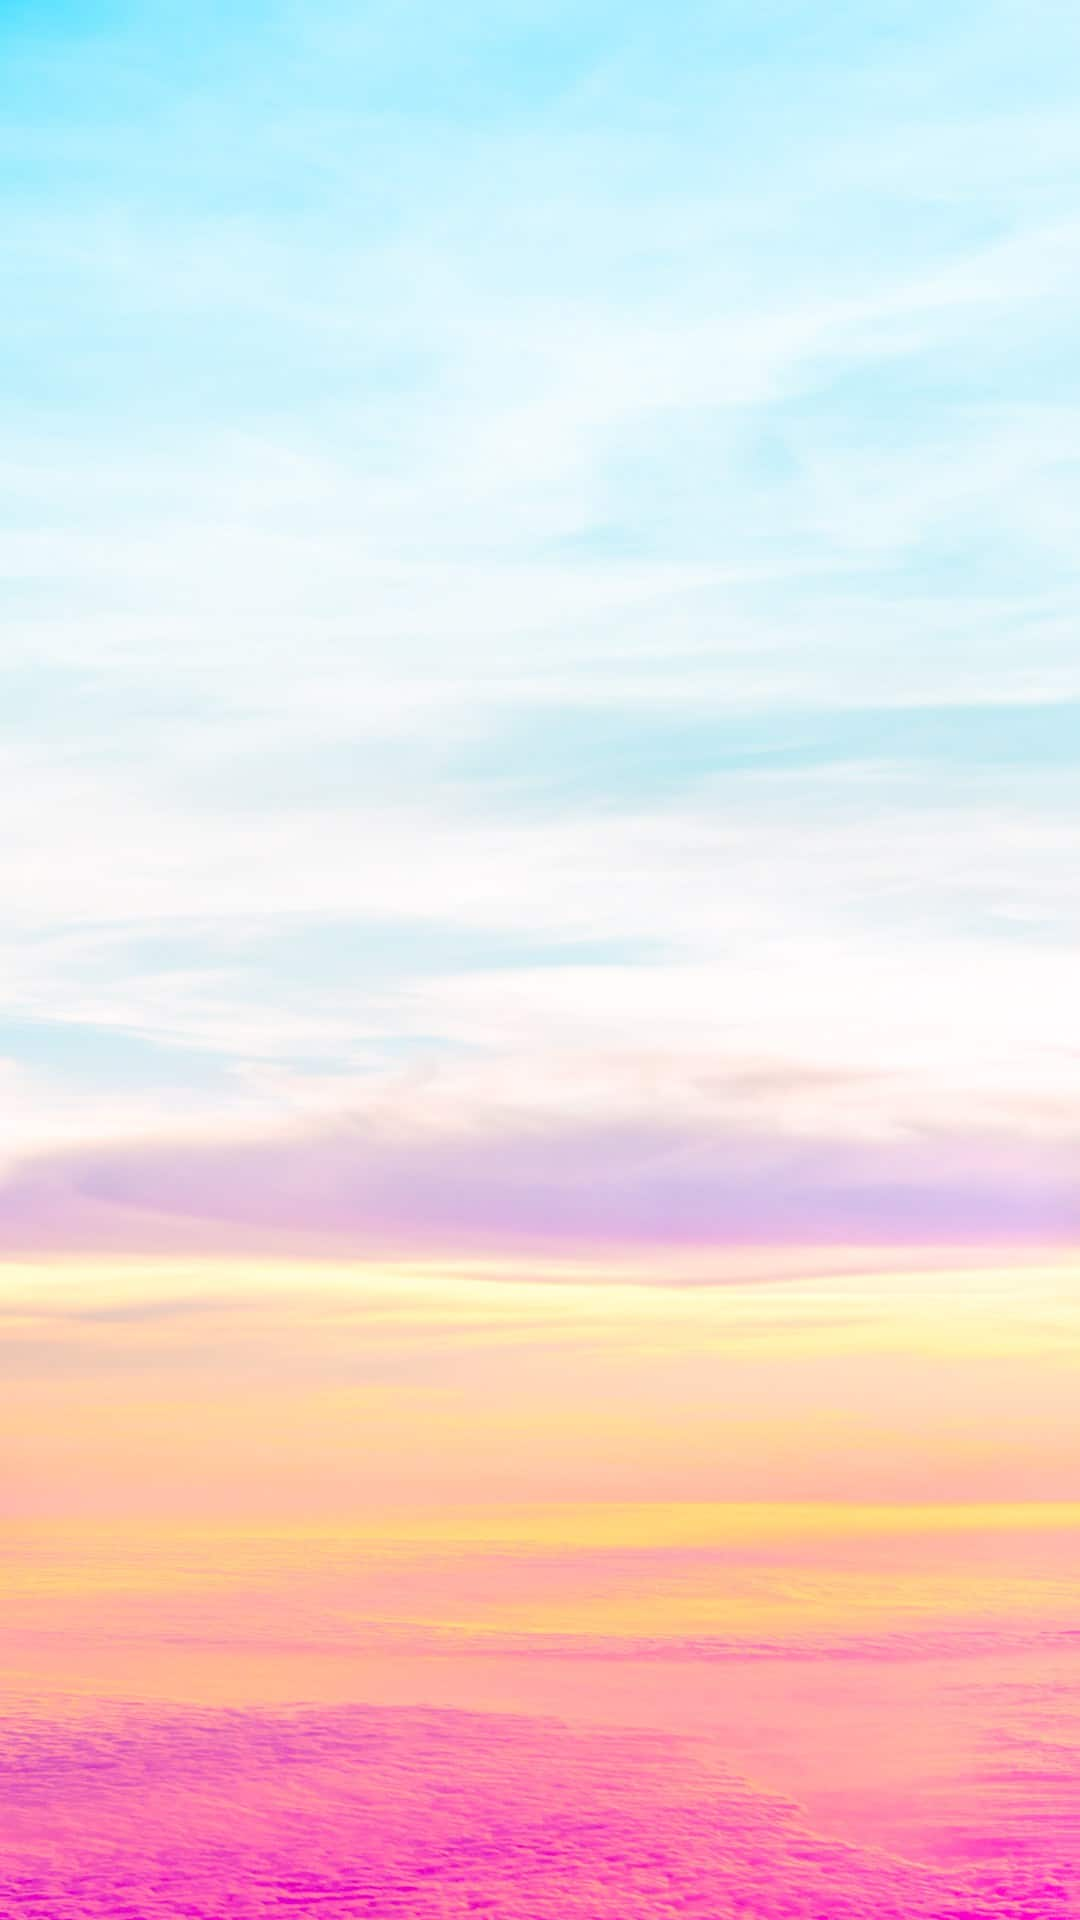 pastel-clouds-sunrise-android-wallpaper